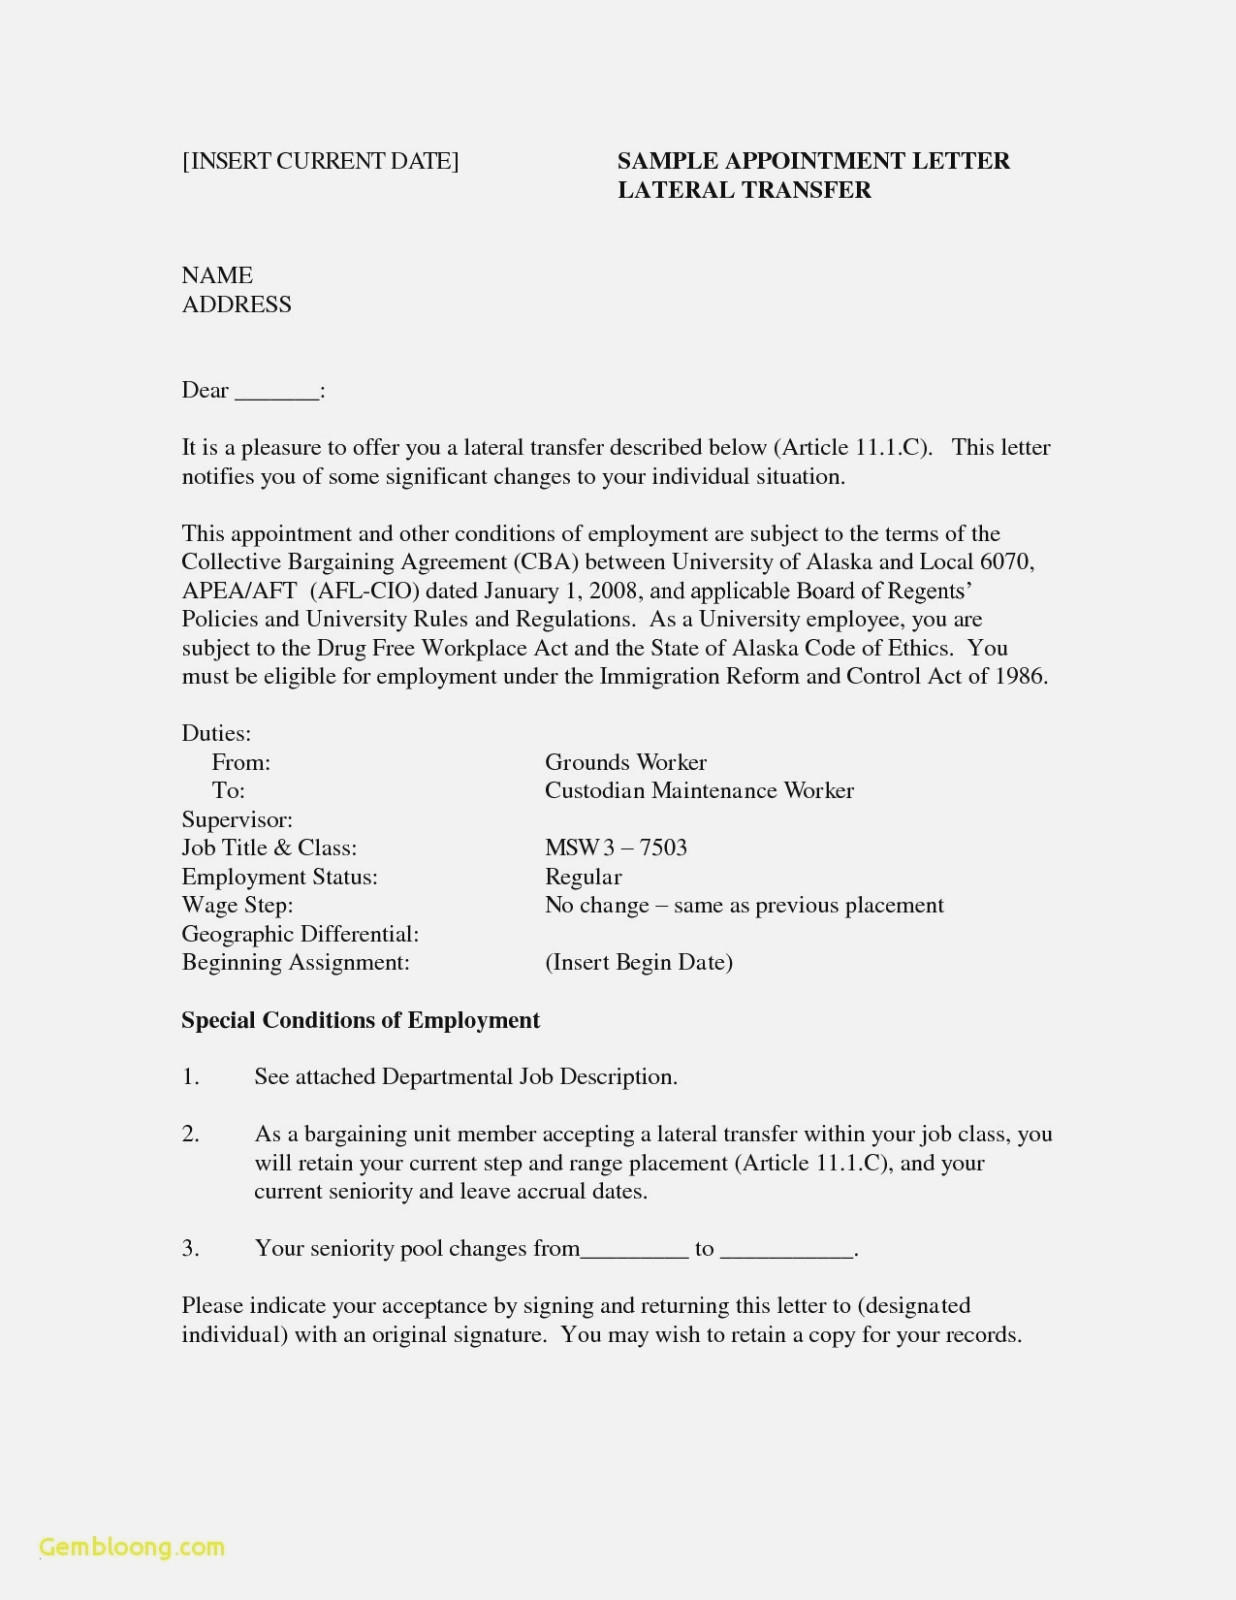 30 Great Budtender Resume Examples By Design At Achance2talk Com